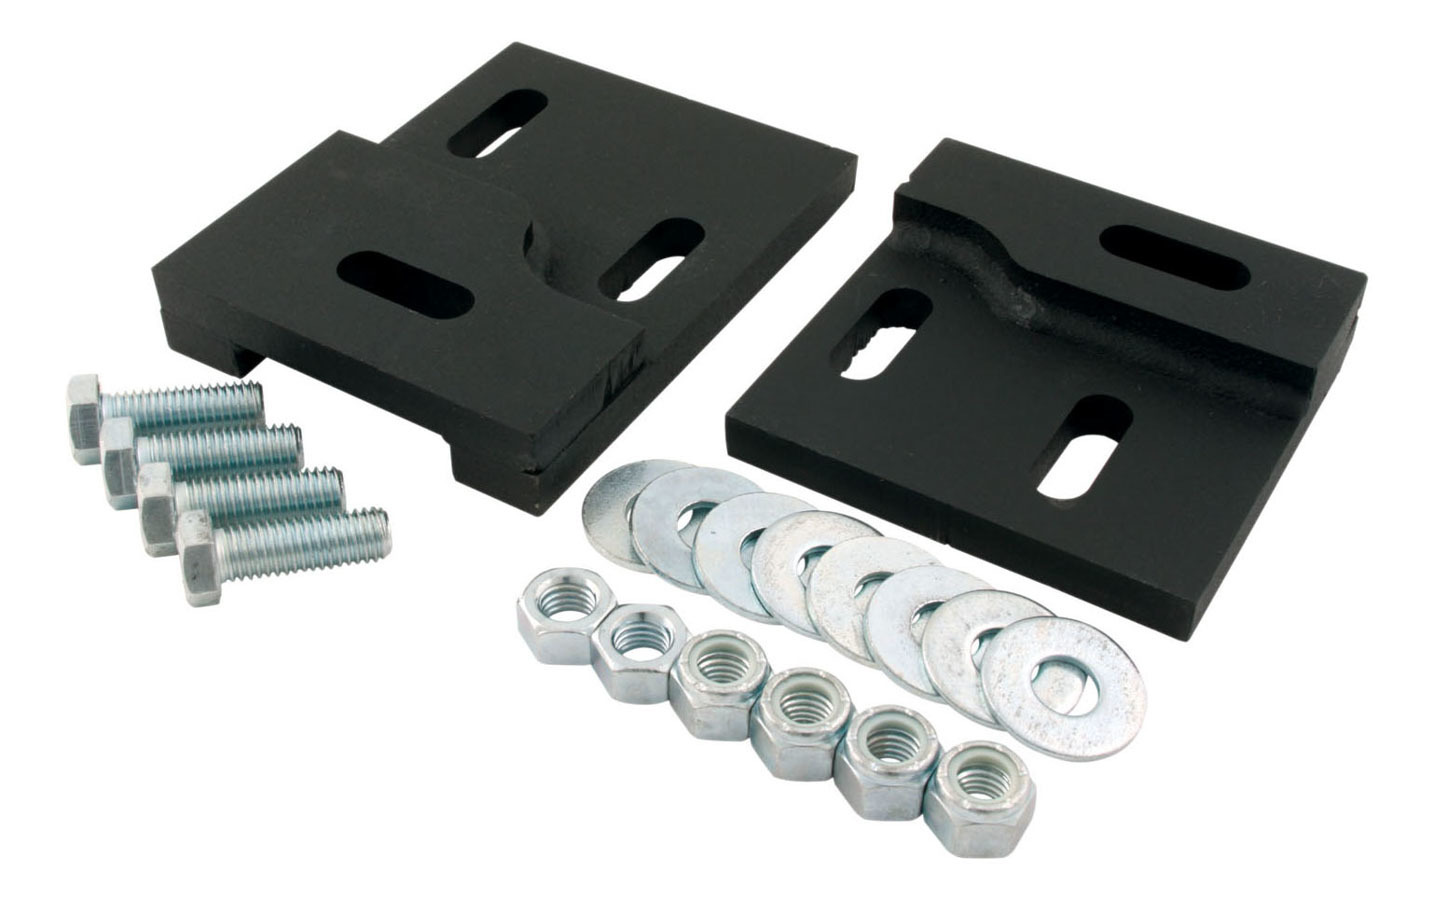 Advance Adapters 713015A Motor Mount, Bolt-On, Steel, Ford Ranger / Bronco Ii / Explorer 2WD to Small Block Ford, Kit